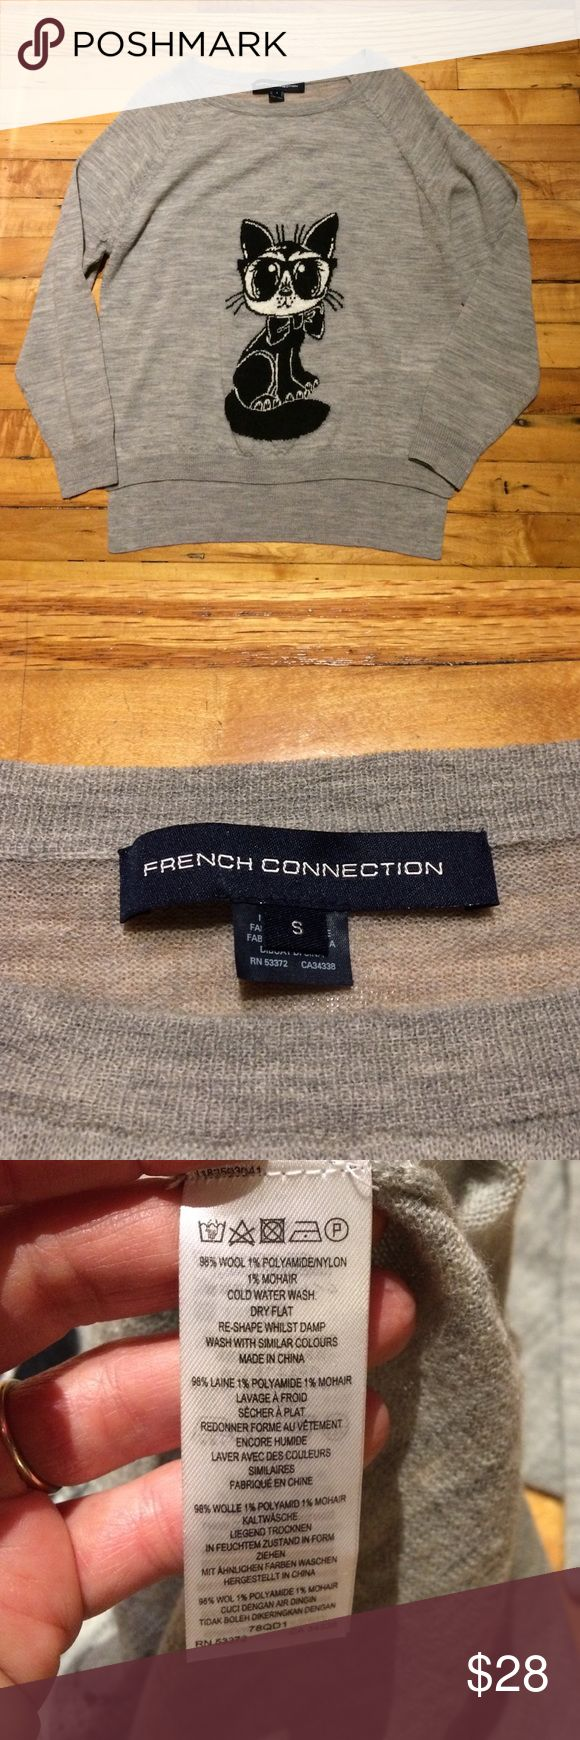 """French Connection sweater Gray wool cat sweater by French Connection. Very soft and comfortable. Size S. In extremely good used condition with no holes, stains, or pills. About 2"""" longer in back than front. Looks great with leggings. French Connection Sweaters"""